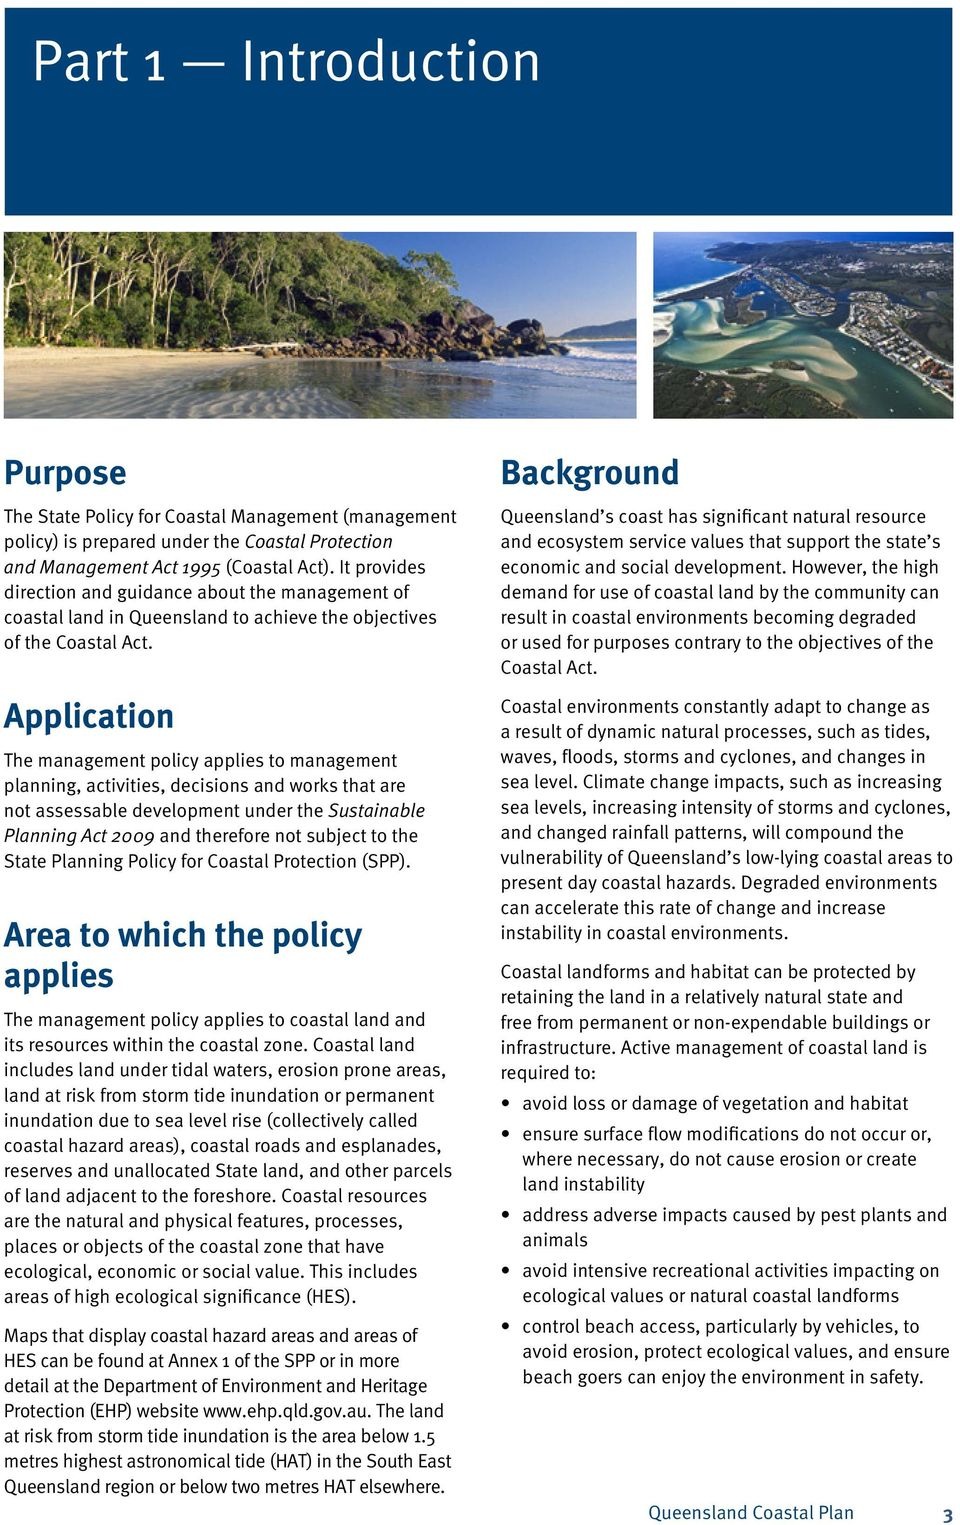 Application The management policy applies to management planning, activities, decisions and works that are not assessable development under the Sustainable Planning Act 2009 and therefore not subject